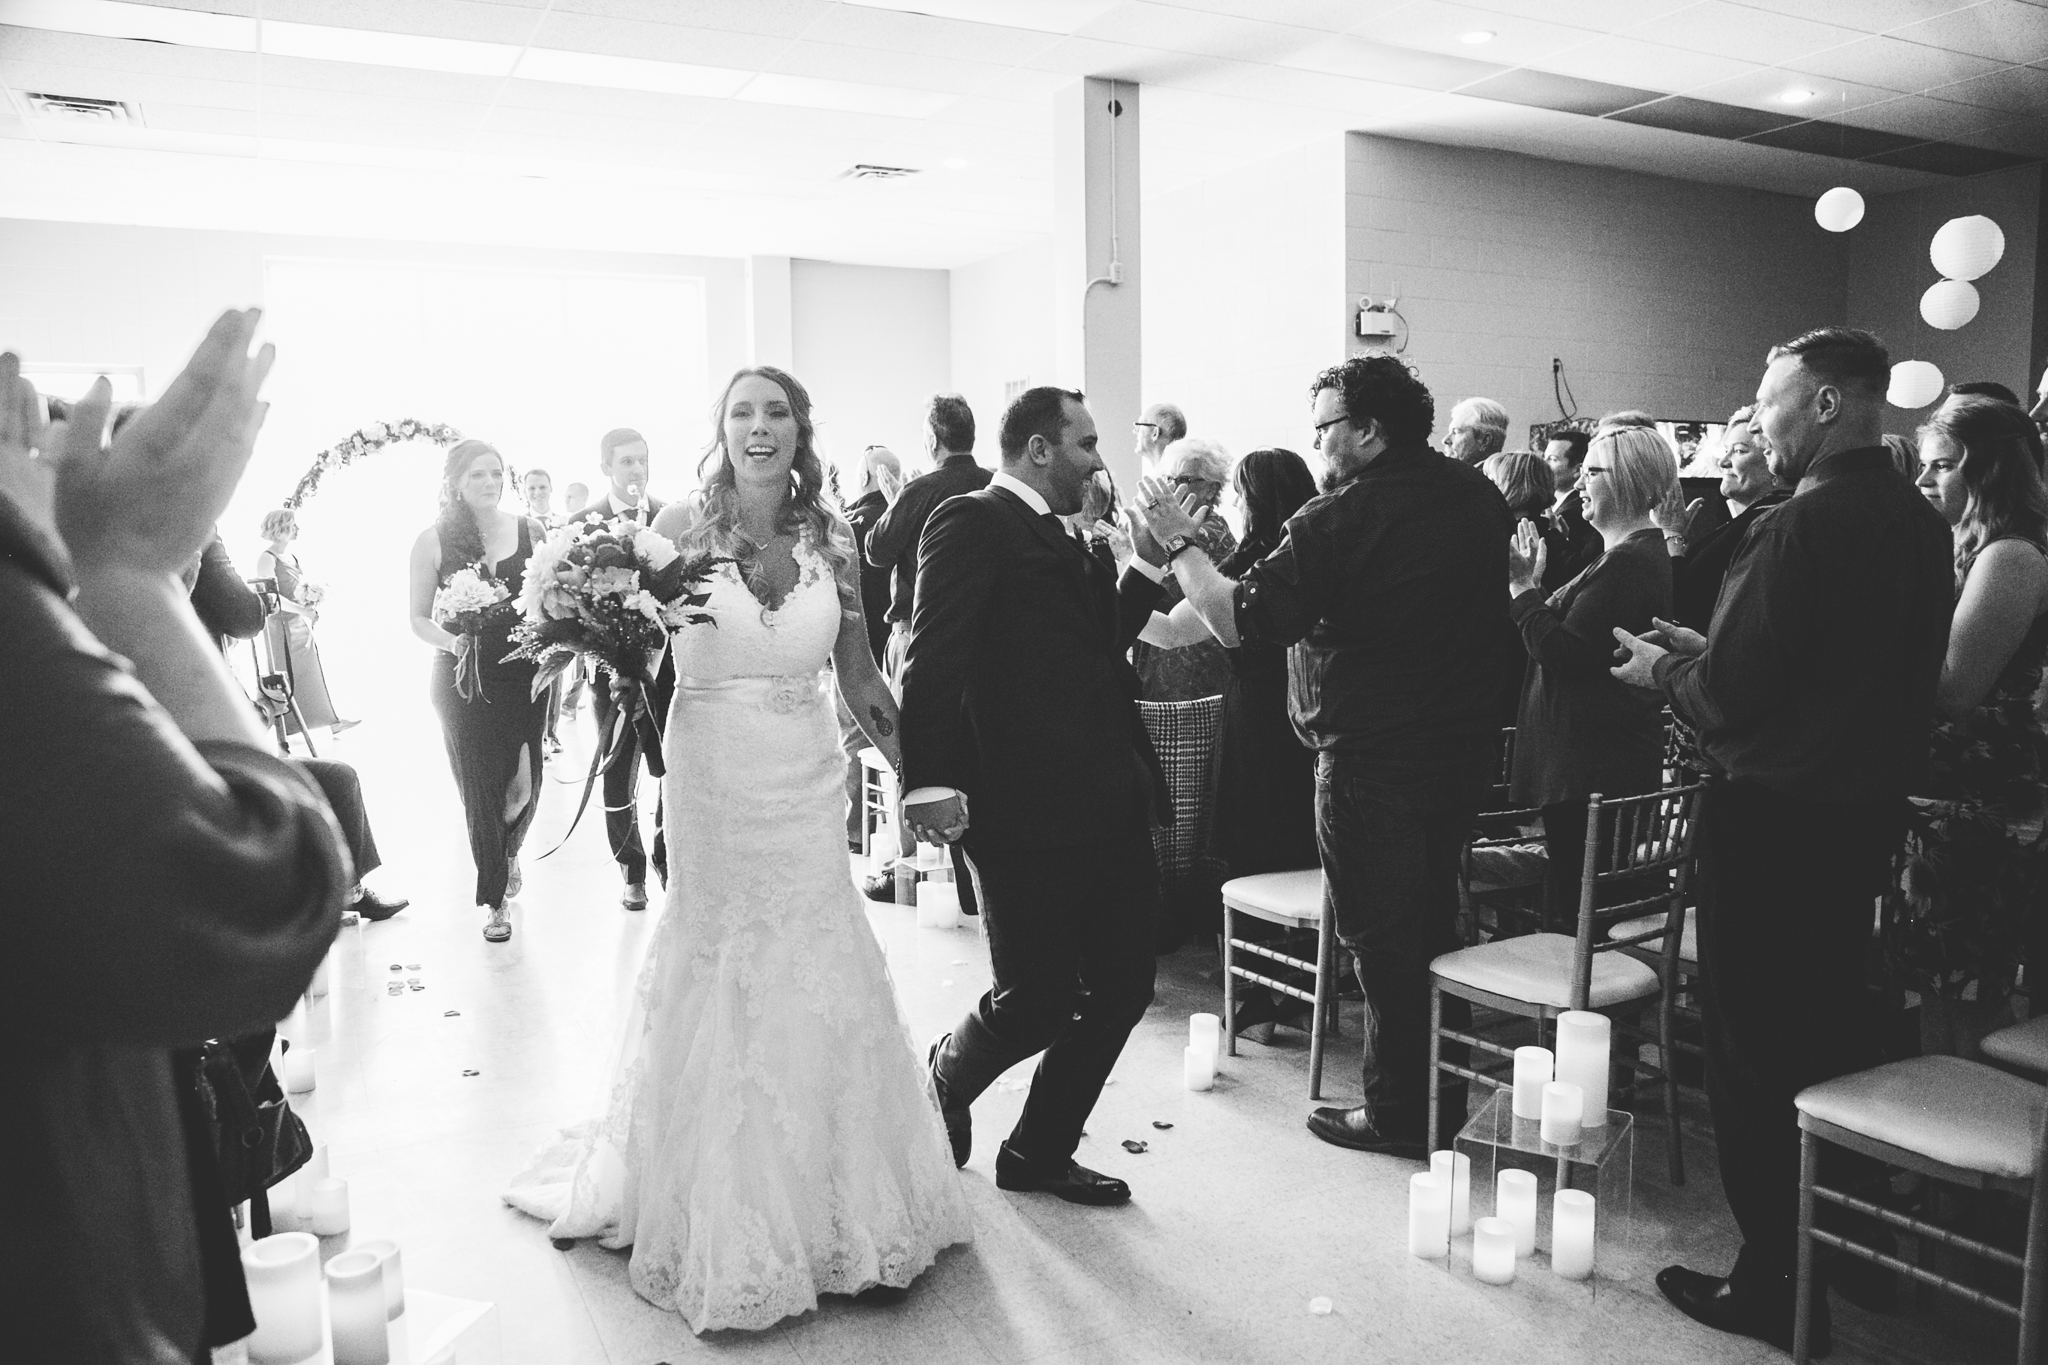 lethbridge-wedding-photography-love-and-be-loved-rocky-mountain-turf-club-ceremony-picture-image-photo-23.jpg